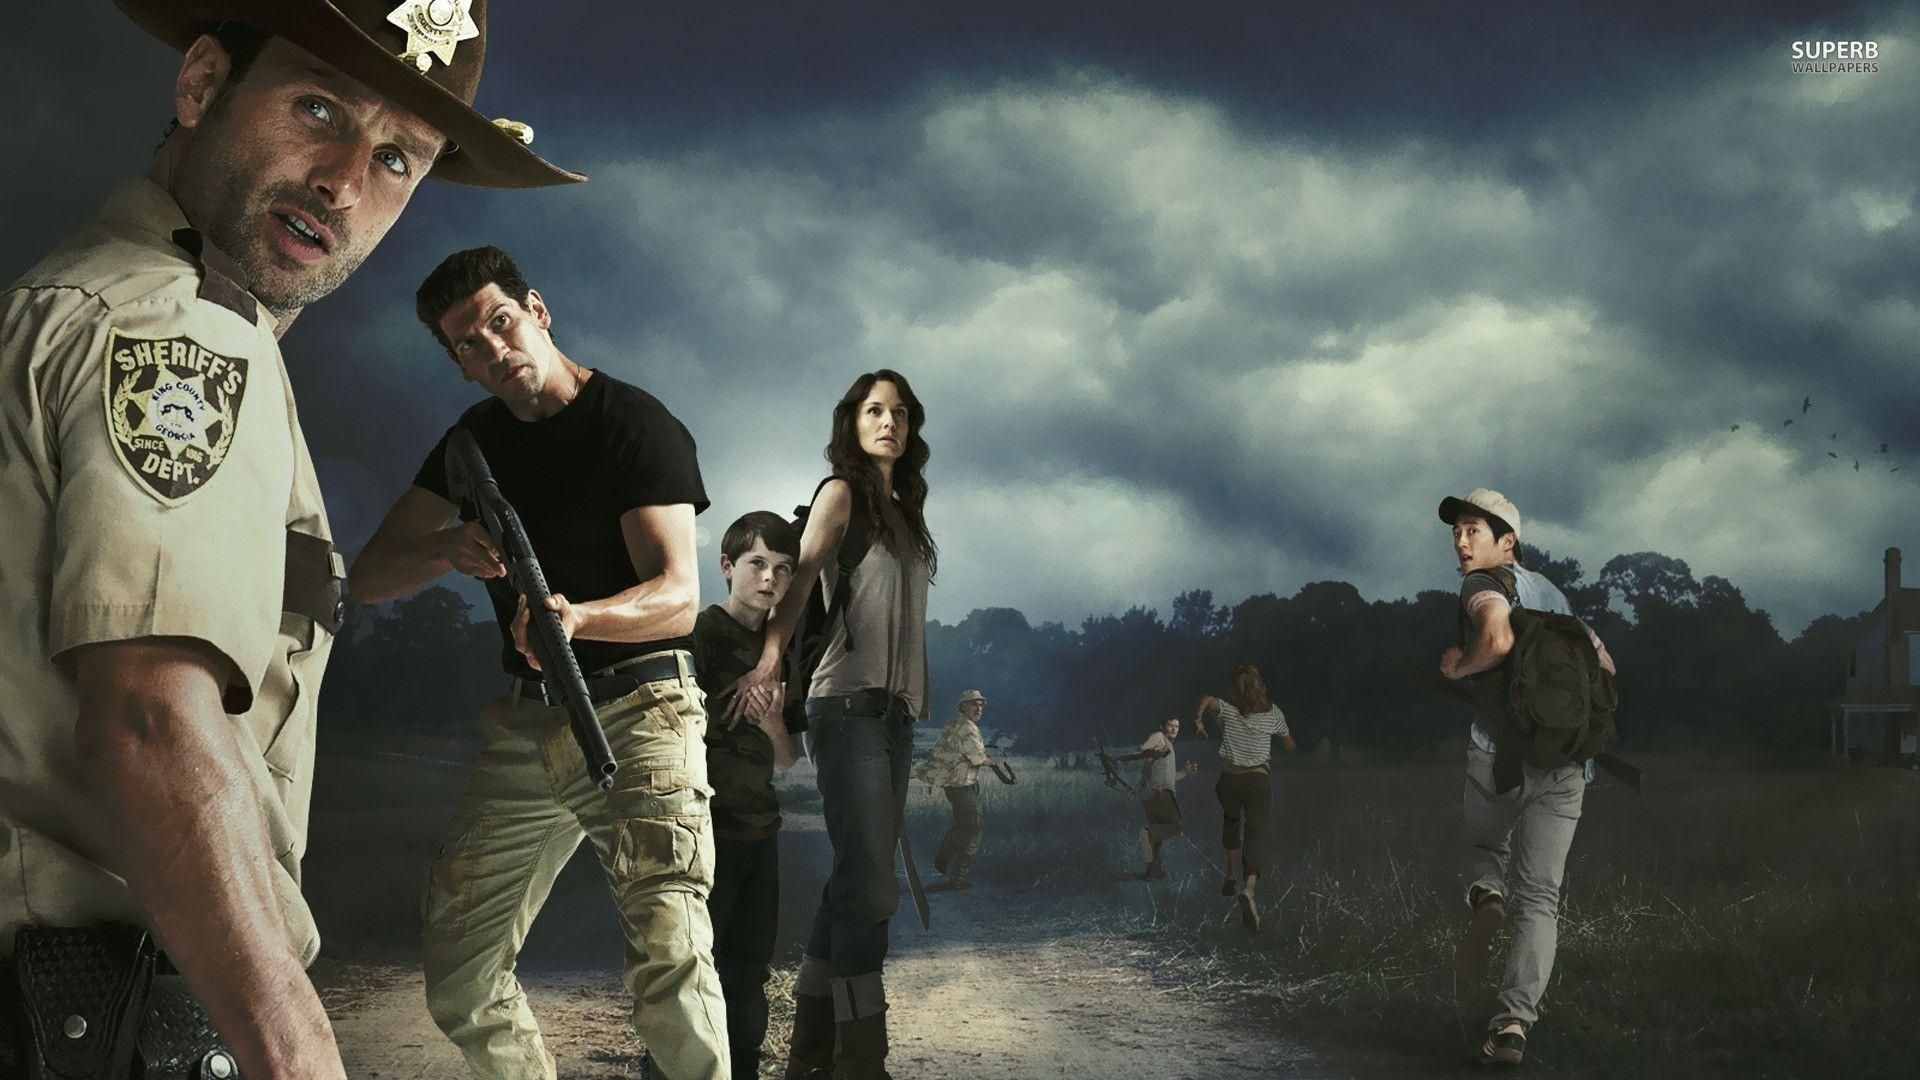 Twd Wallpaper Hd Wallpapers 2020 Walking Dead Wallpaper Twd